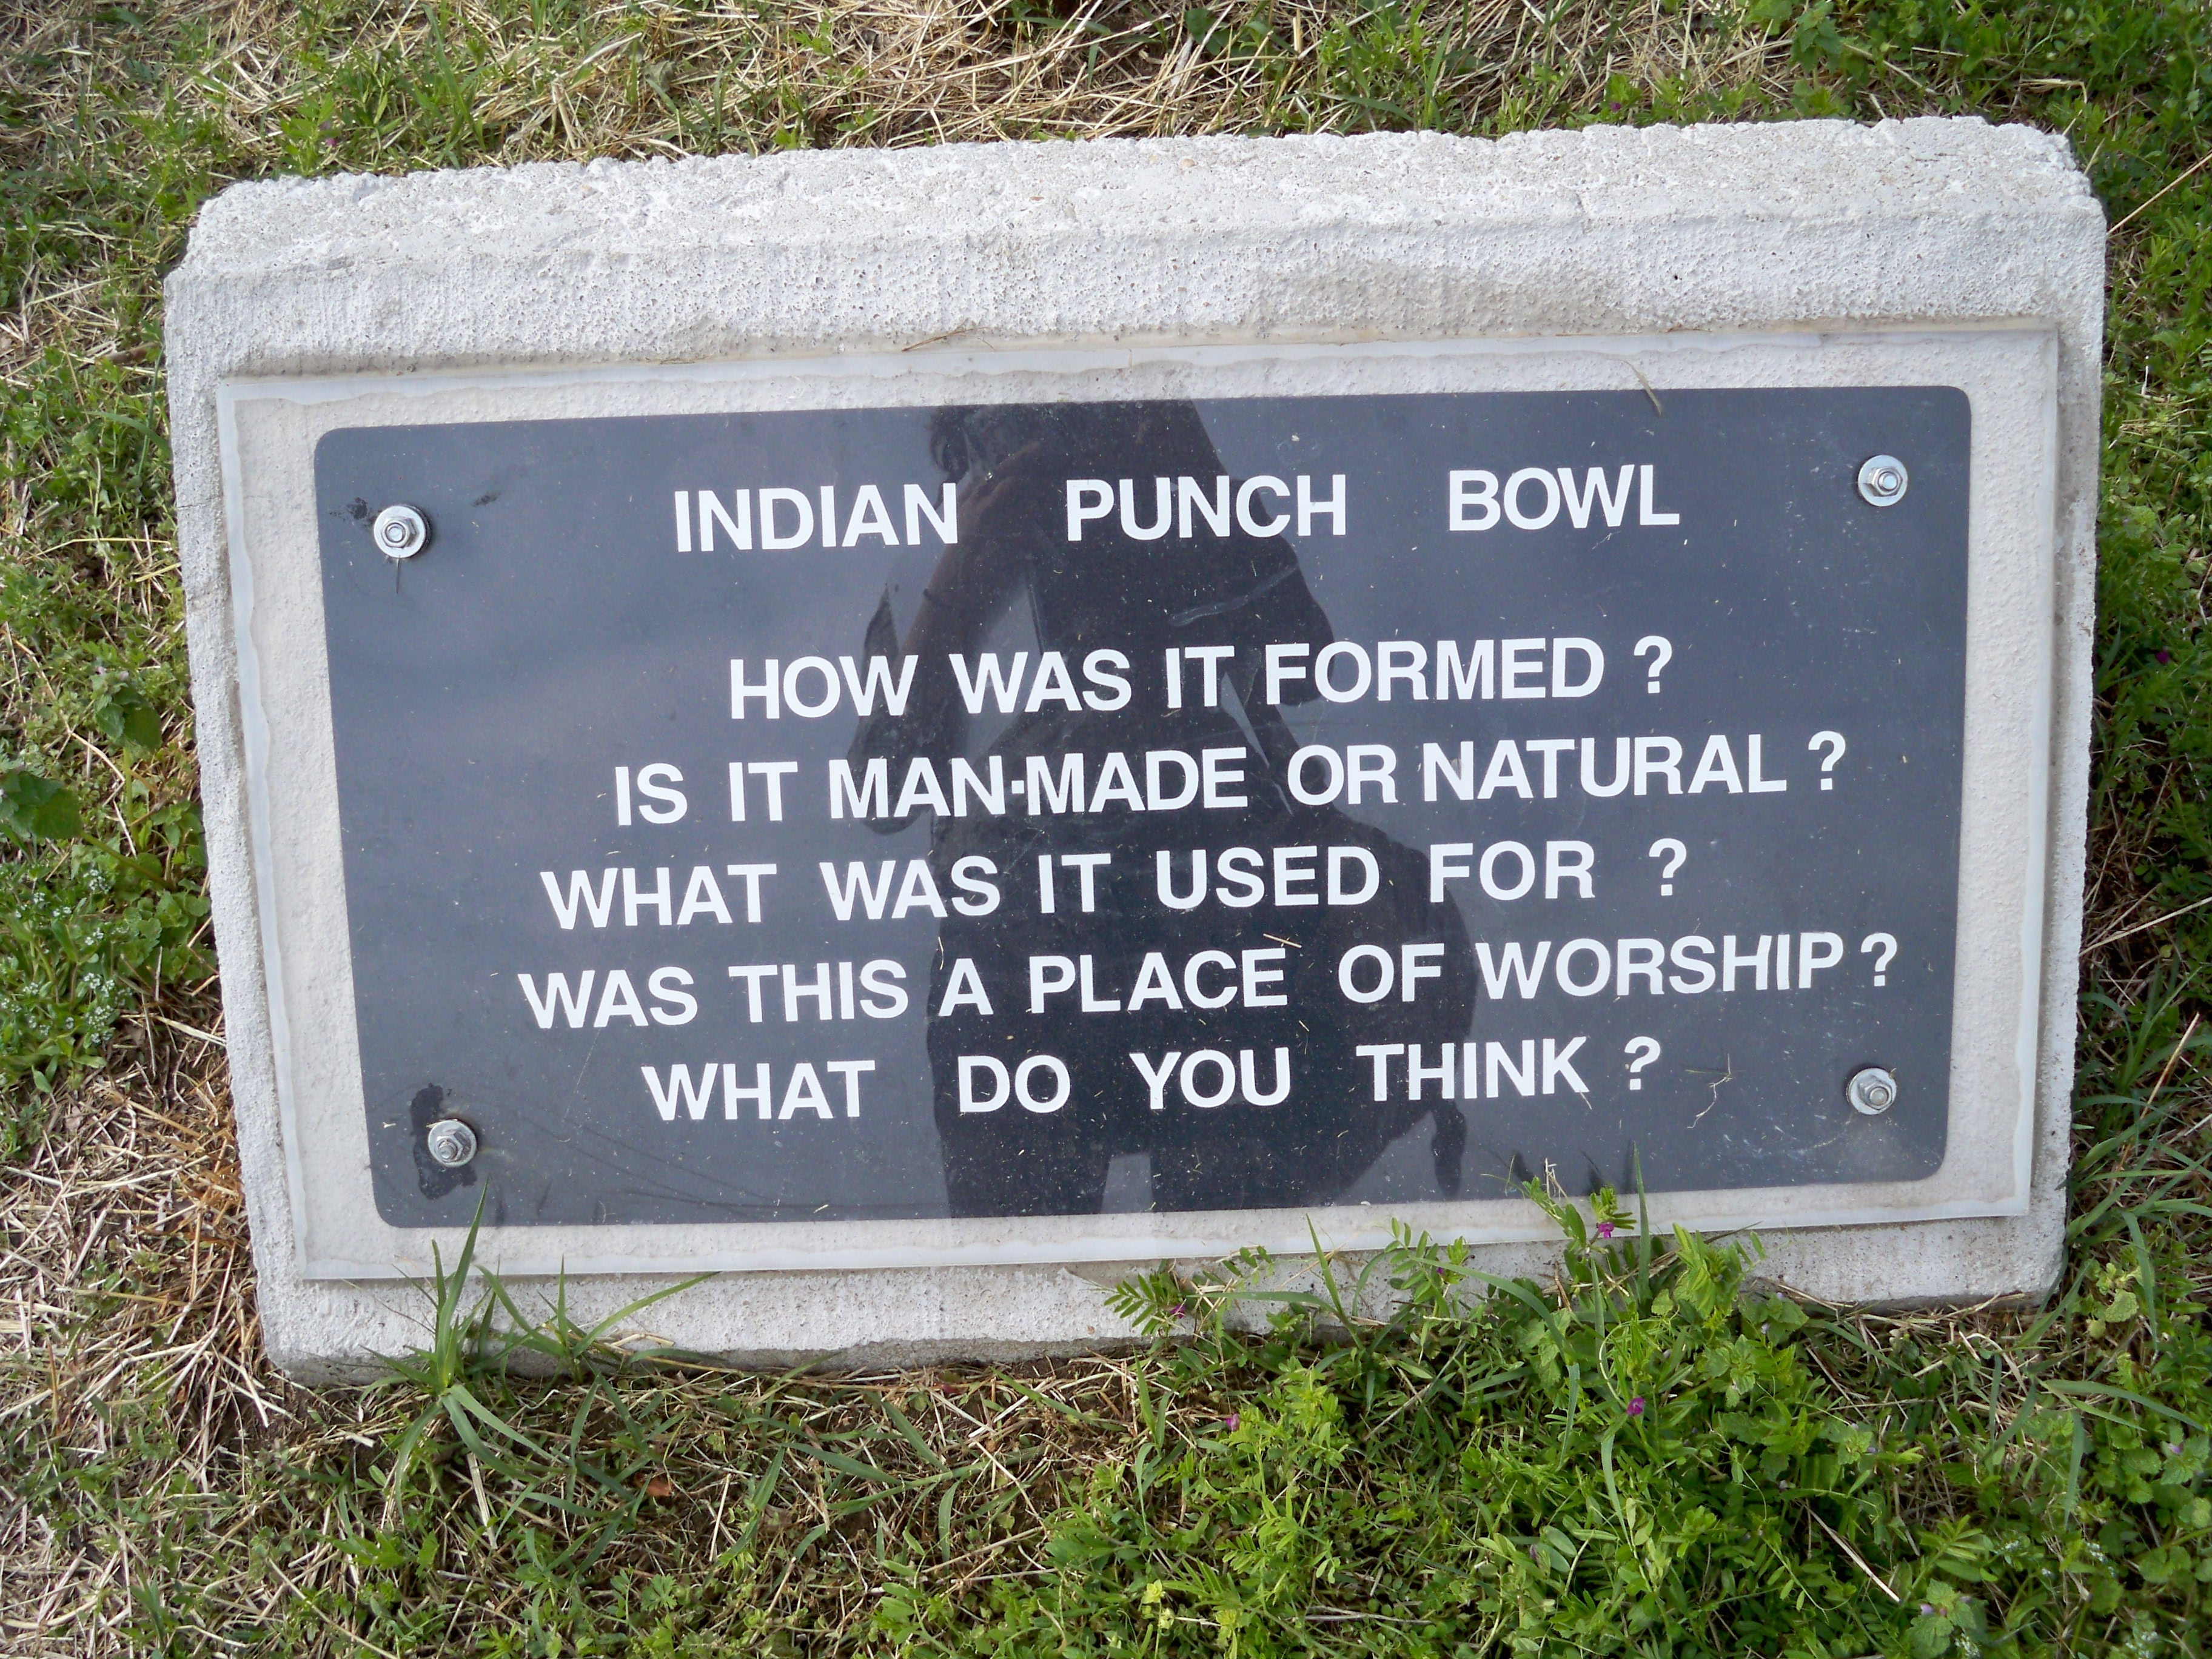 A sign placed next to the Indian Punch Bowl that asks visitors to consider its origins and uses.Photo Credit: Lara Belfield